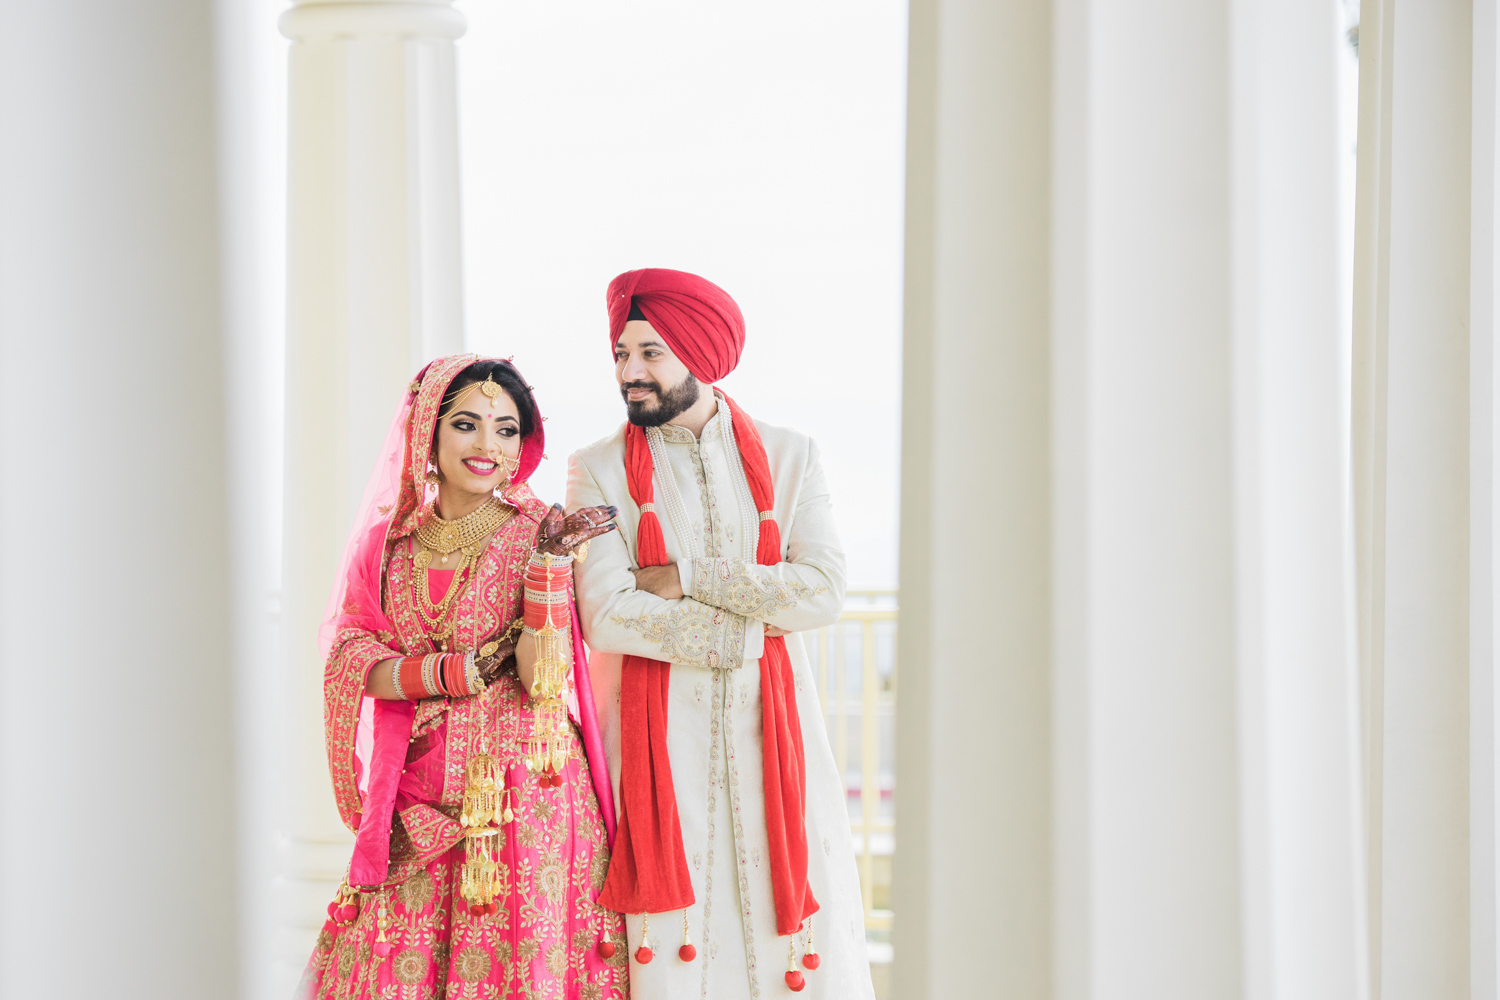 Indian Wedding Photography Poses Bride And Groom 5